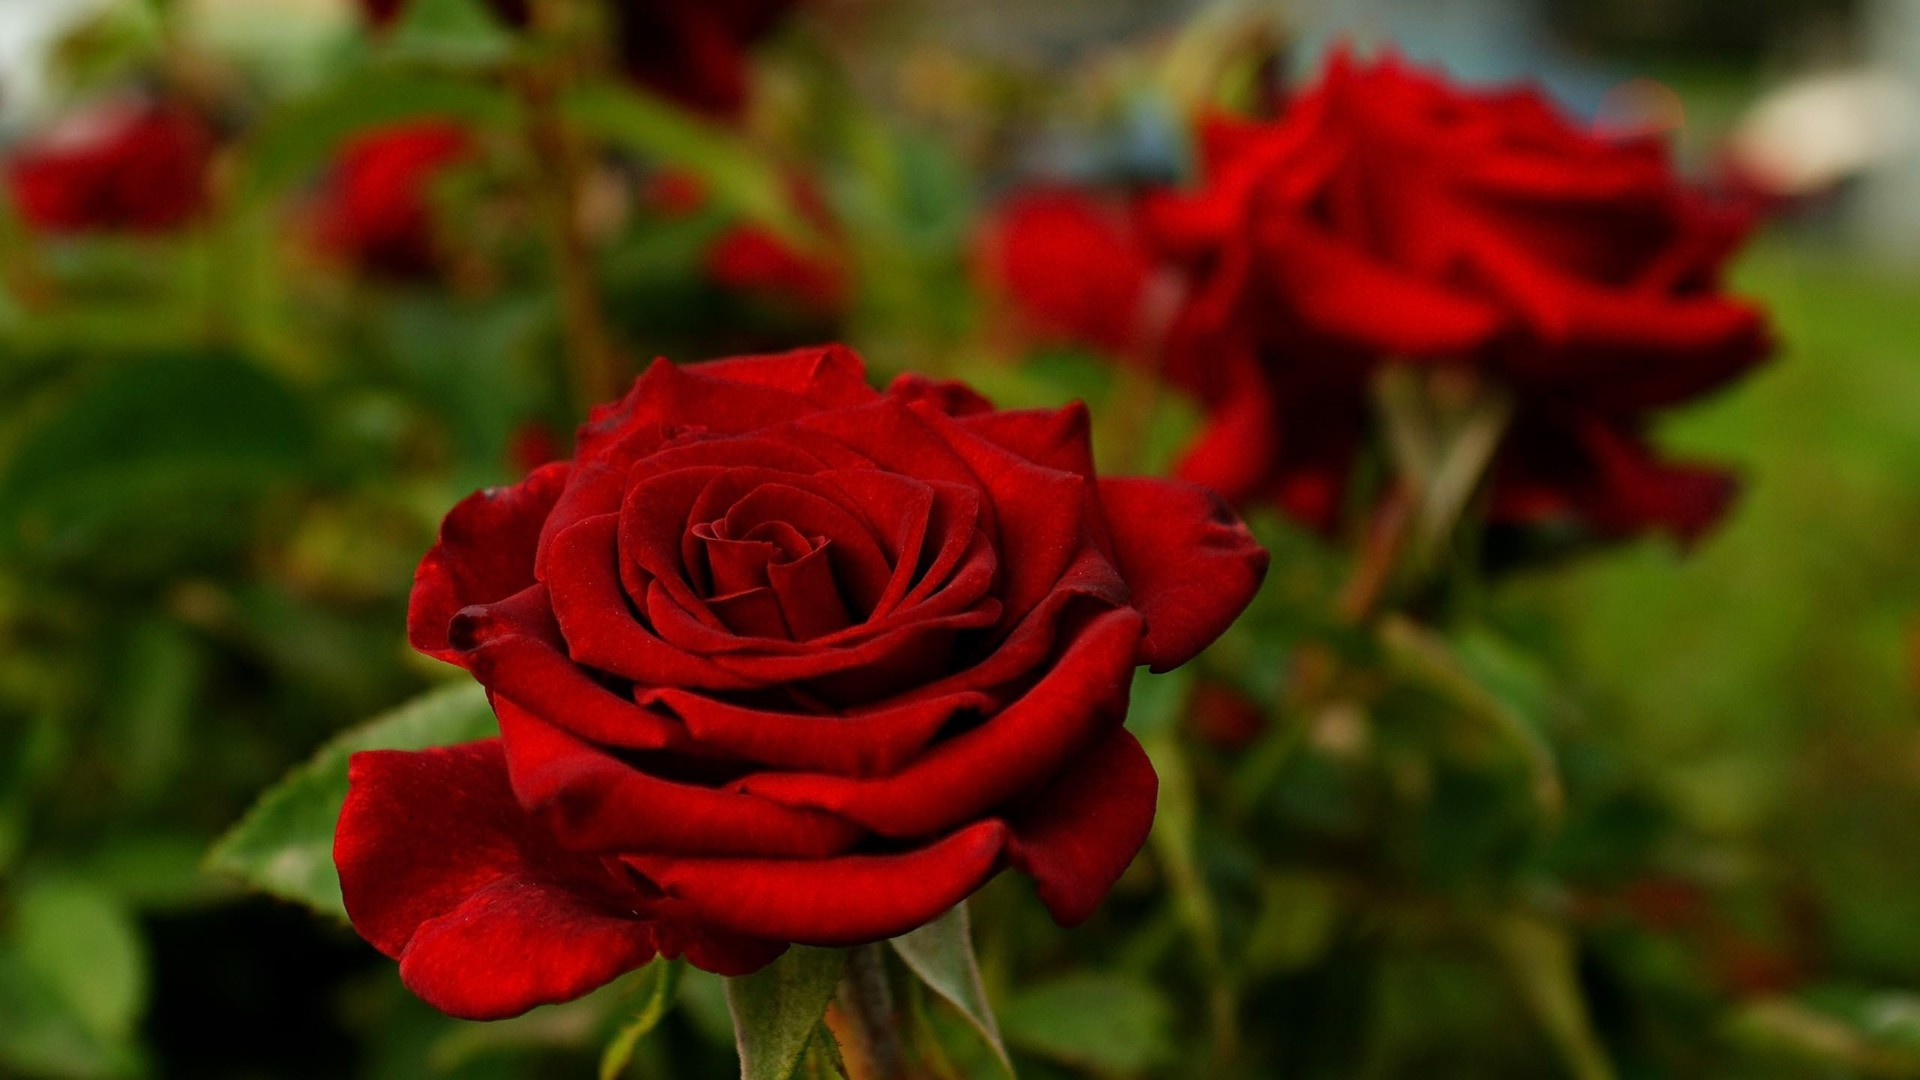 Red Rose Desktop Backgrounds Wallpaper Hd Pixelstalknet